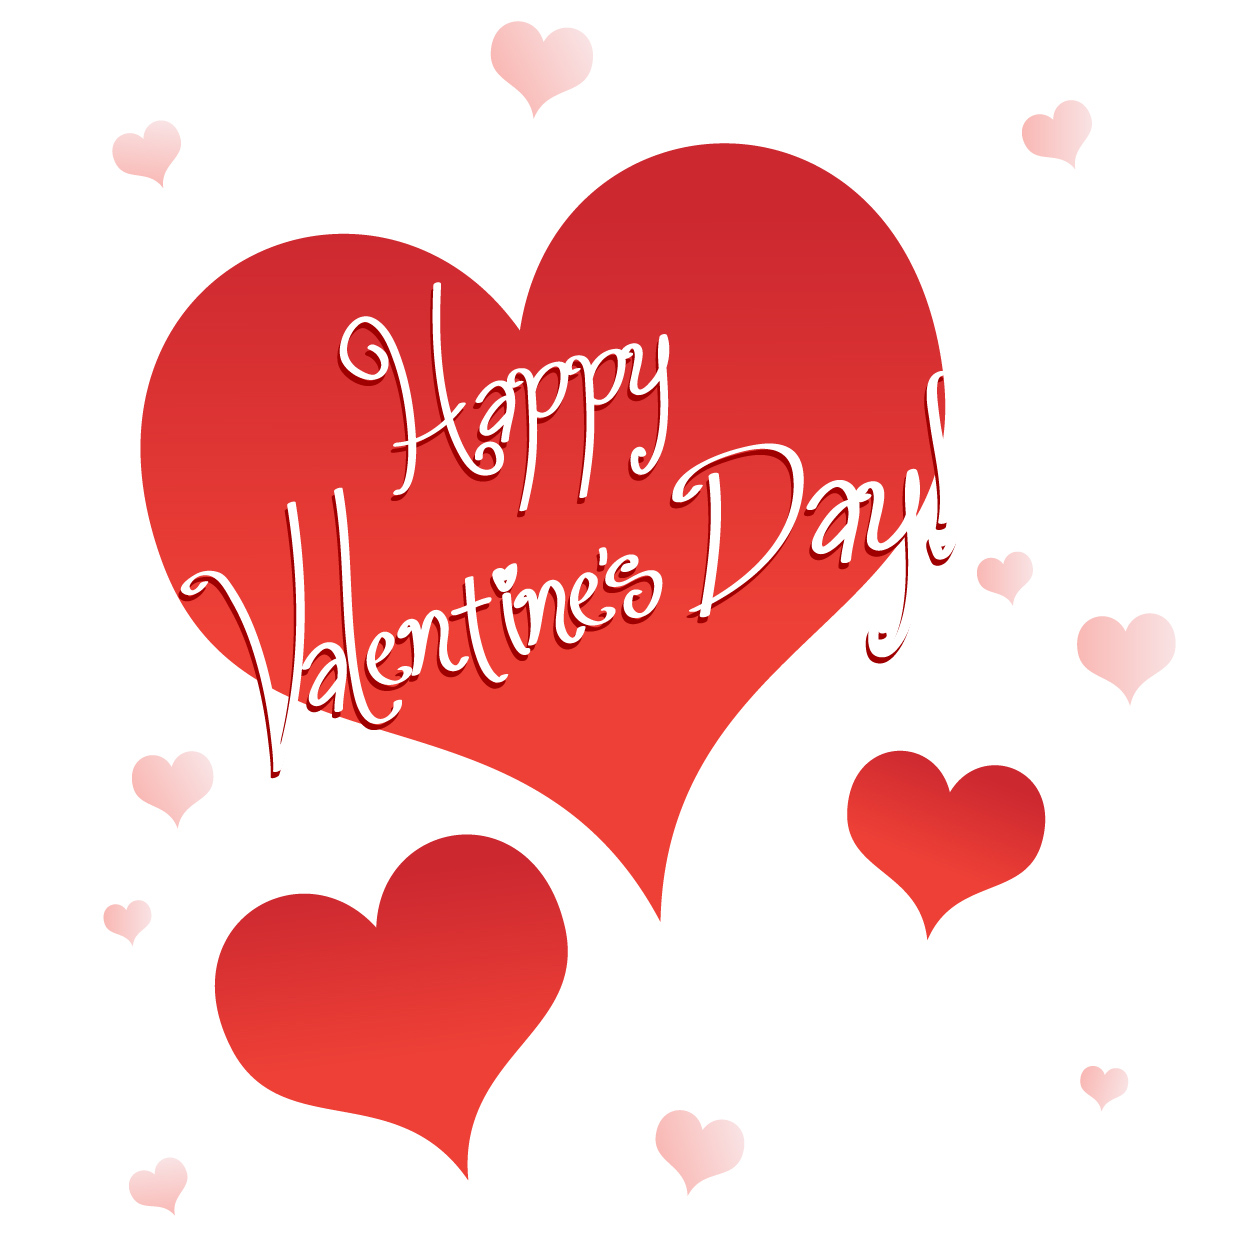 February Valentines Day Clip Art Free Cl-February valentines day clip art free clip art free clip art-4